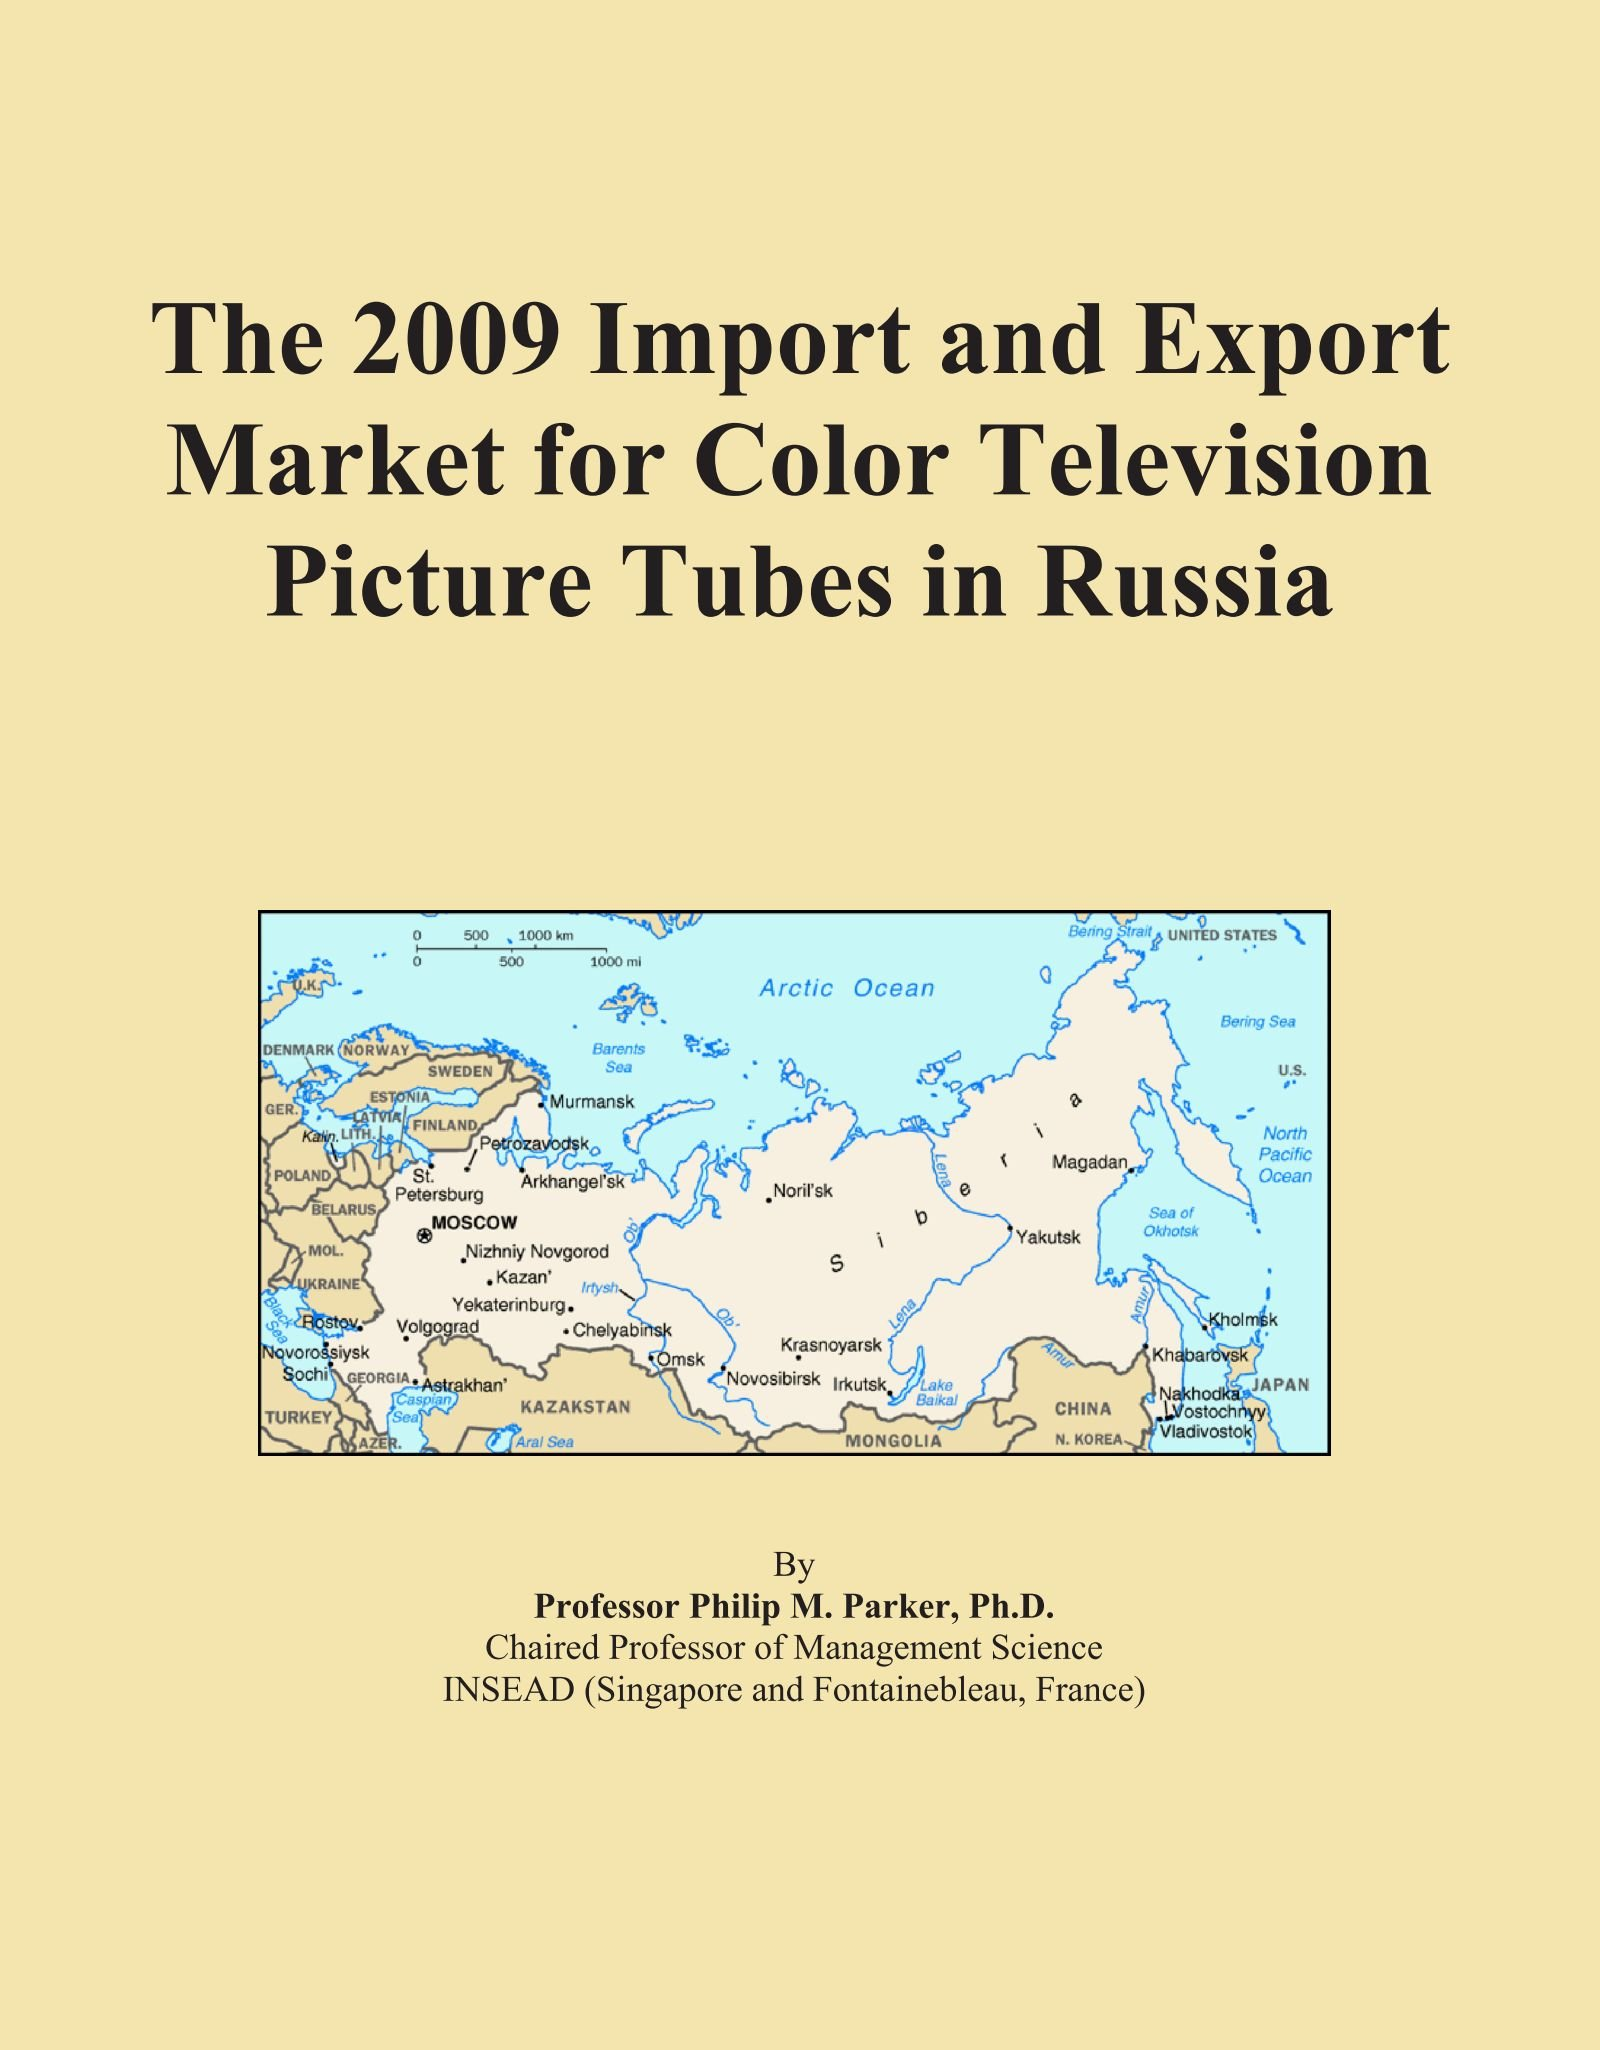 The 2009 Import and Export Market for Color Television Picture Tubes in Russia PDF